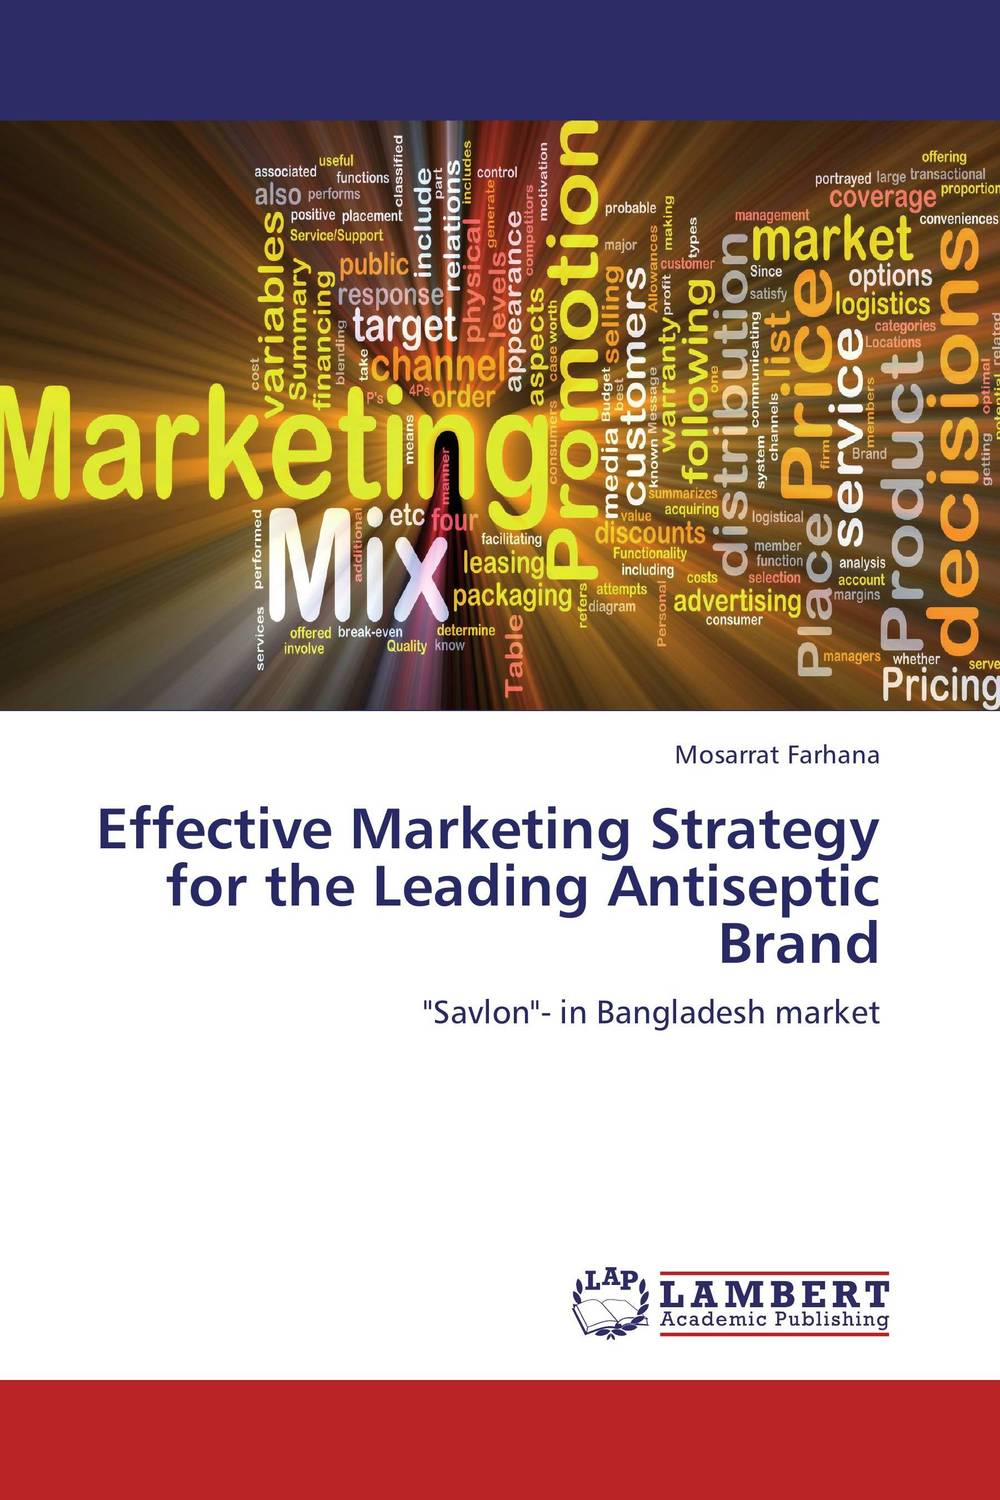 Effective Marketing Strategy for the Leading Antiseptic Brand adding customer value through effective distribution strategy